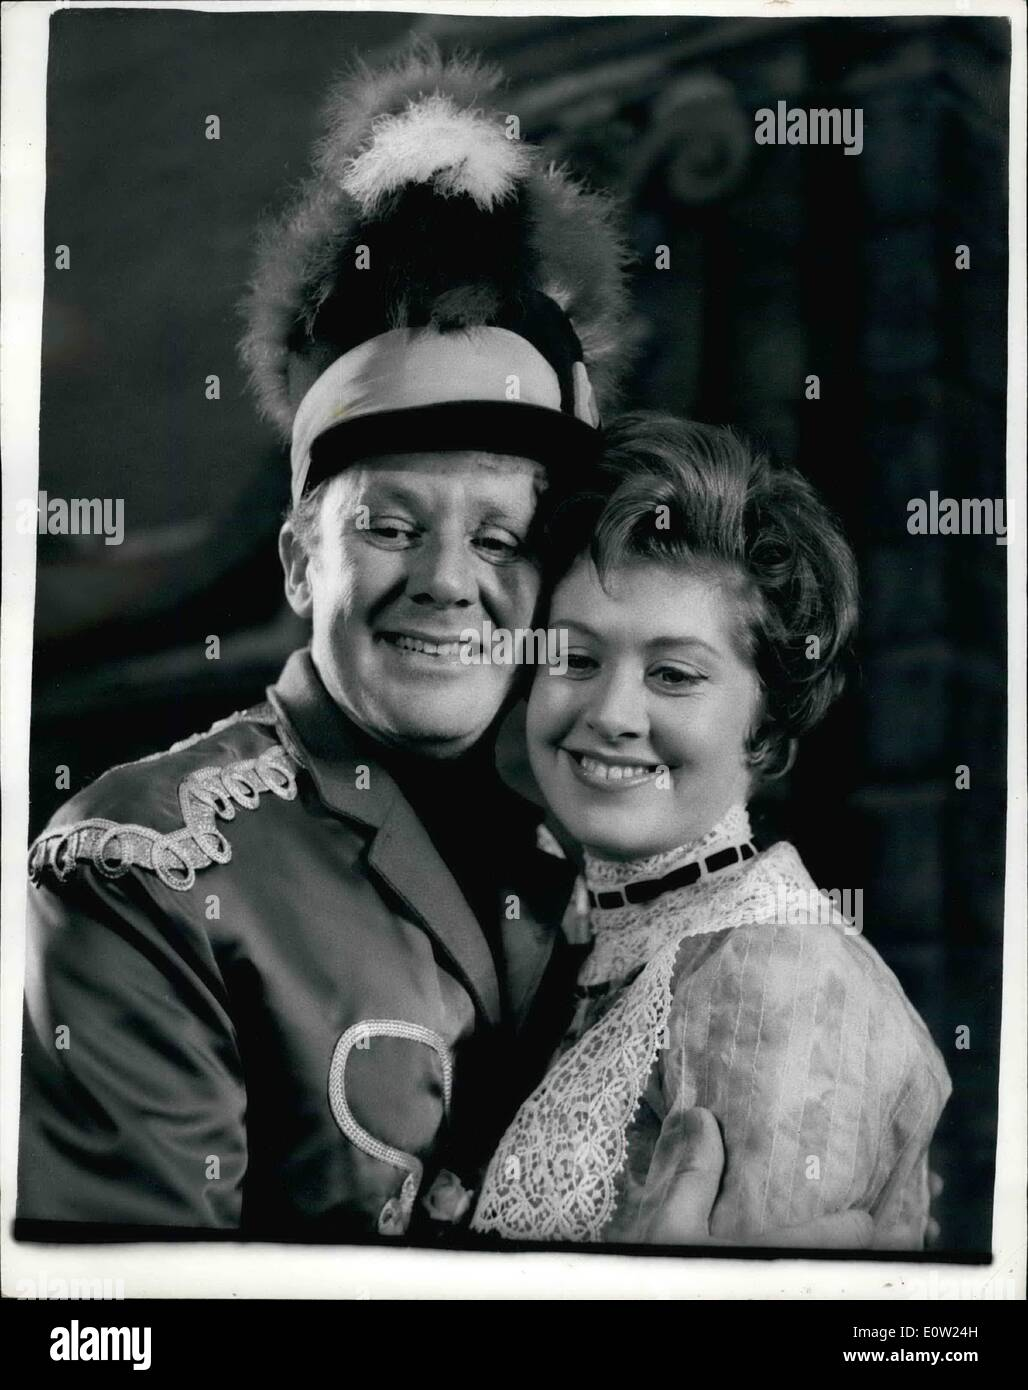 Feb. 02, 1961 - ''The Music Man'' rehearsal: Twelve-year old Gillian Martindale, from Norbury, who makes her stage debut in ''The Music Man'', was rehearsing at the Adelphi Theater today with leading man Van Johnson (''Professor'' Harold Hill), and Patricia Lambert (Marian Paroo). Gillian, who plays Gracie Shinn, a singing, dancing and speaking role, has been acting professionally in films since she was six. Her latest is ''Blue Murder at St. Trinians''. ''The Music Man opens at the Adelphi on March 16th, after a short proviscial run at the Hippodrome, Birstol, beginning Feb - Stock Image